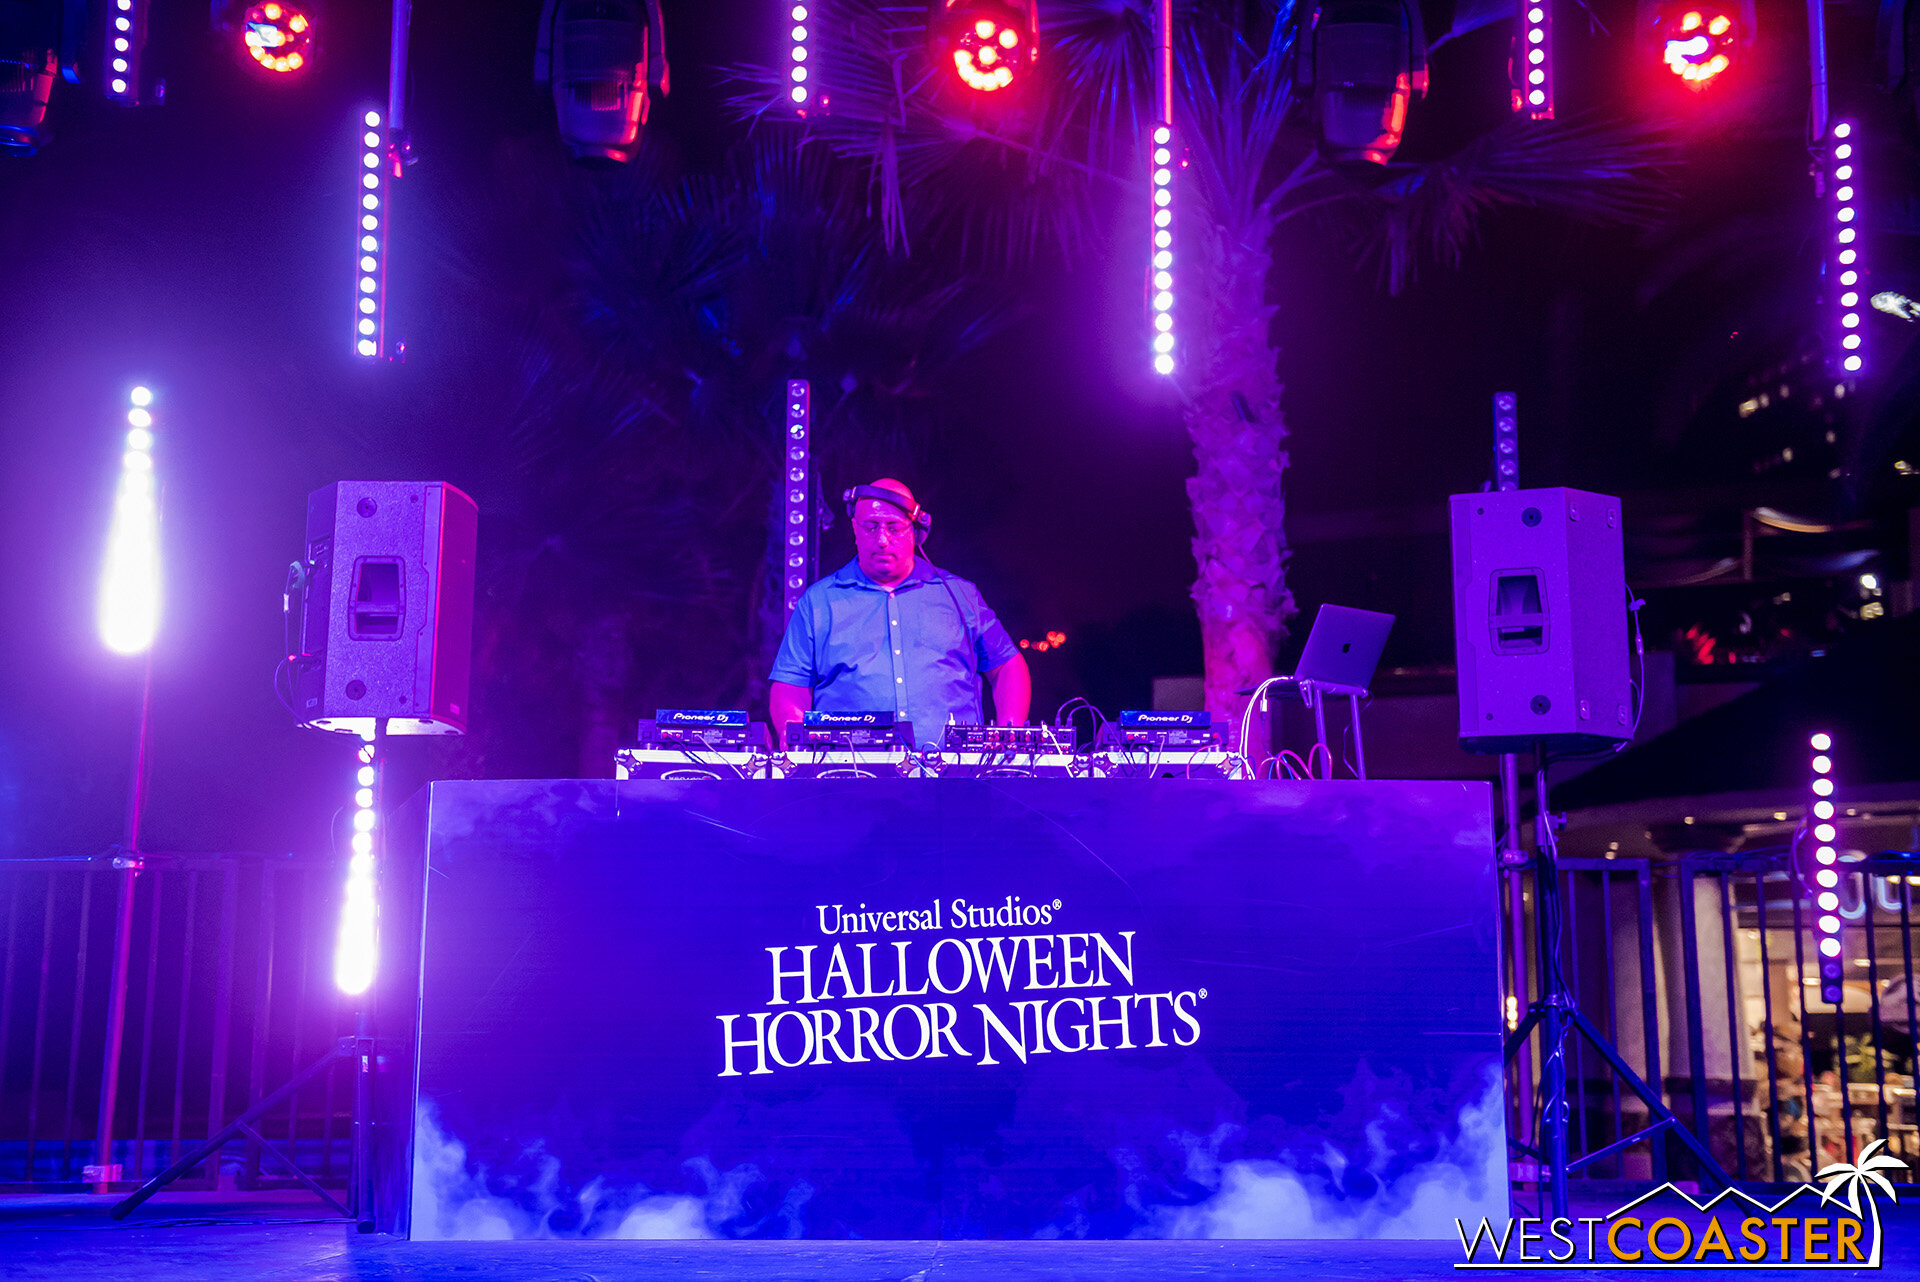 It was a regular DJ last Thursday, but starting today, Thursday nights will host a dance party emceed by Beetlejuice!